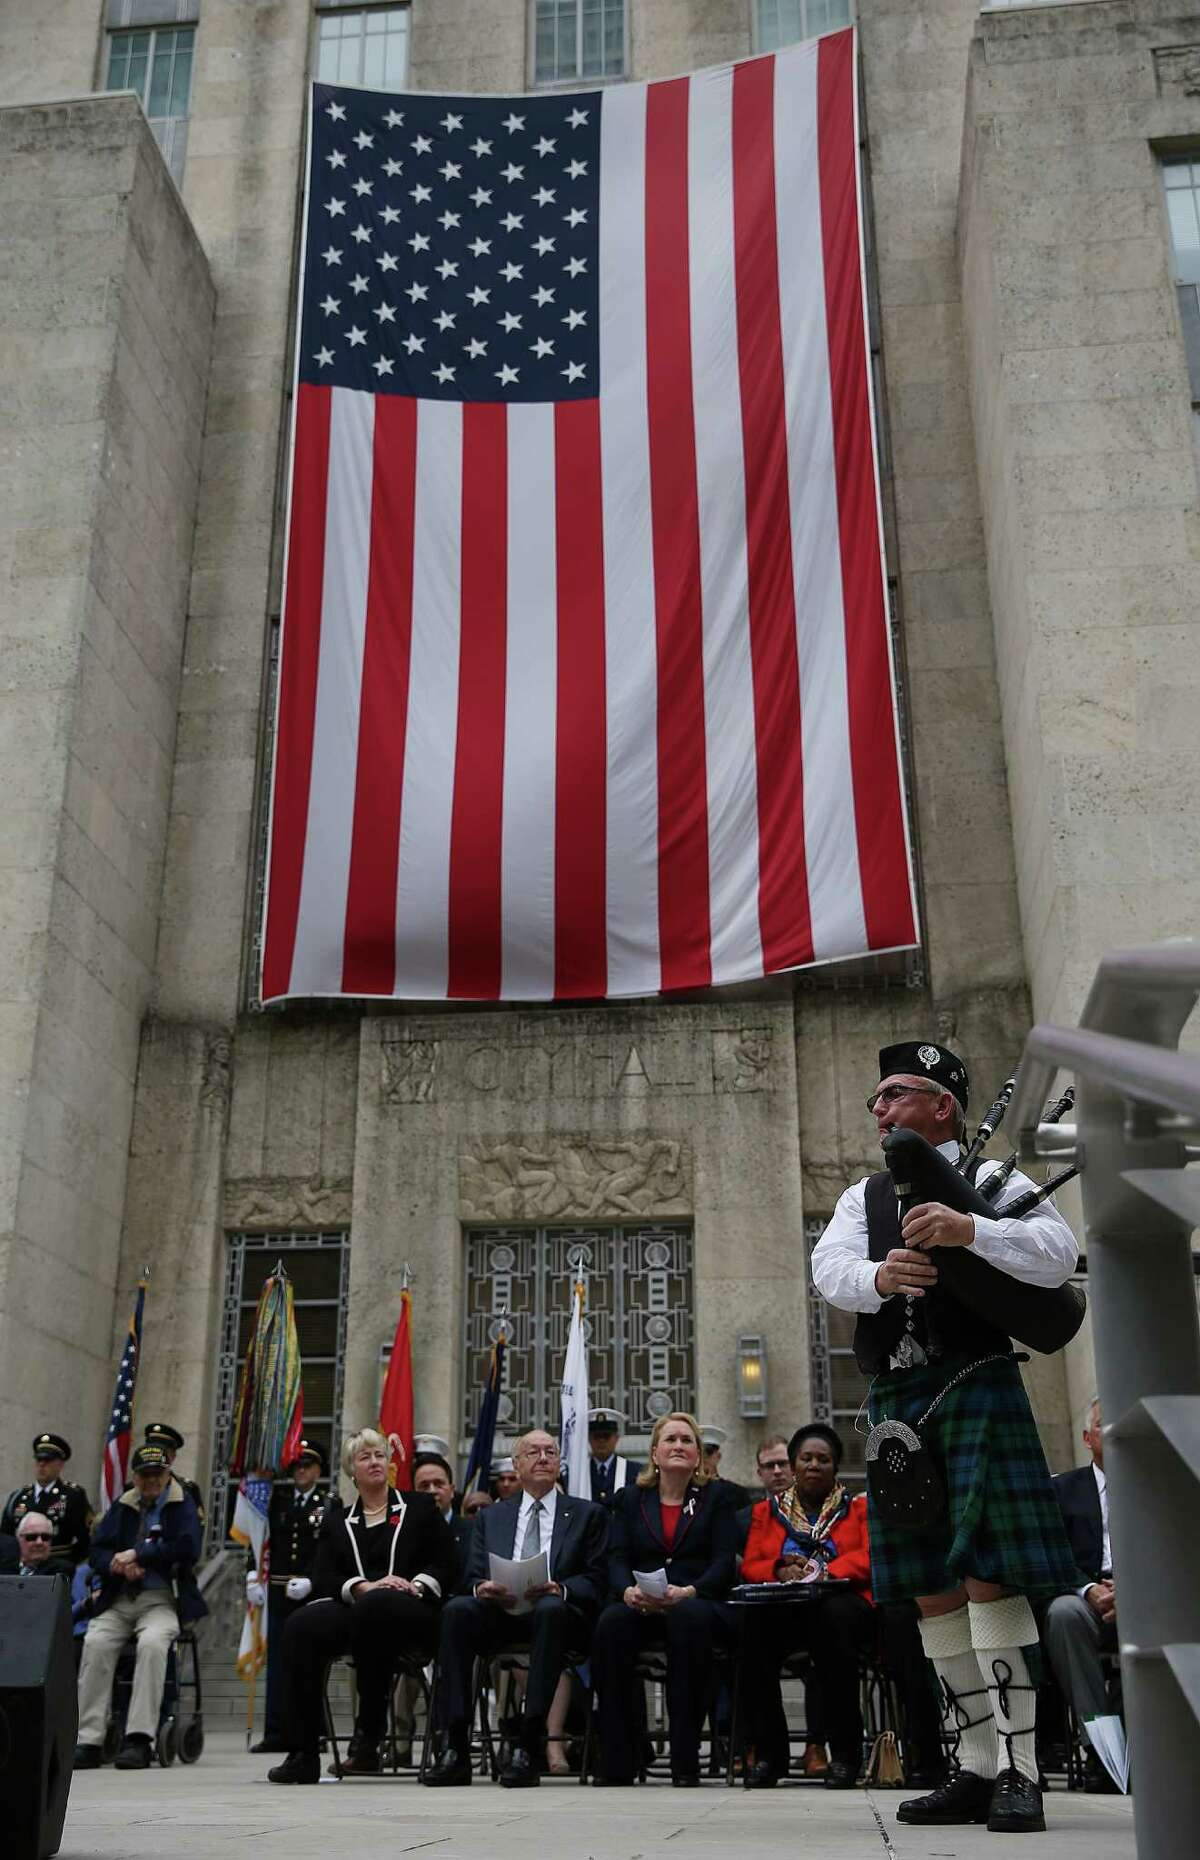 """Bagpiper Ian Martin performs an """"American Set"""" melody of songs on the steps of Houston City Hall during the Veteran's Day ceremonies on Wednesday, Nov. 11, 2015, in Houston."""